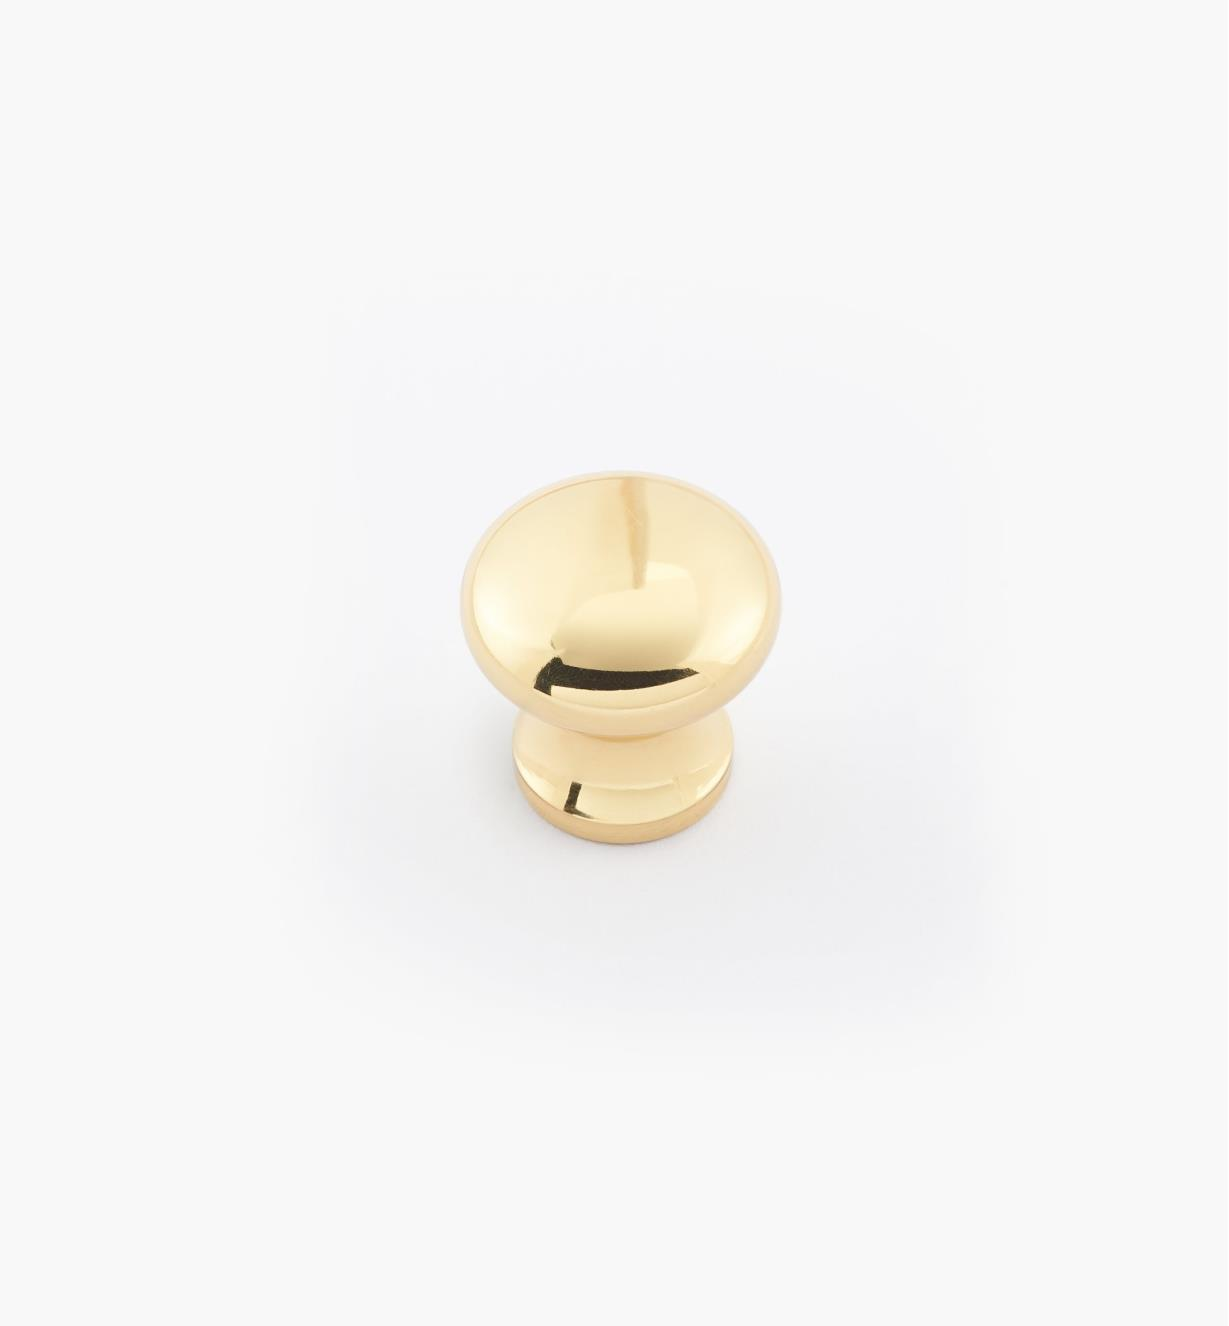 "02W2708 - 5/8"" × 5/8"" Round Brass Knob, Polished Brass"